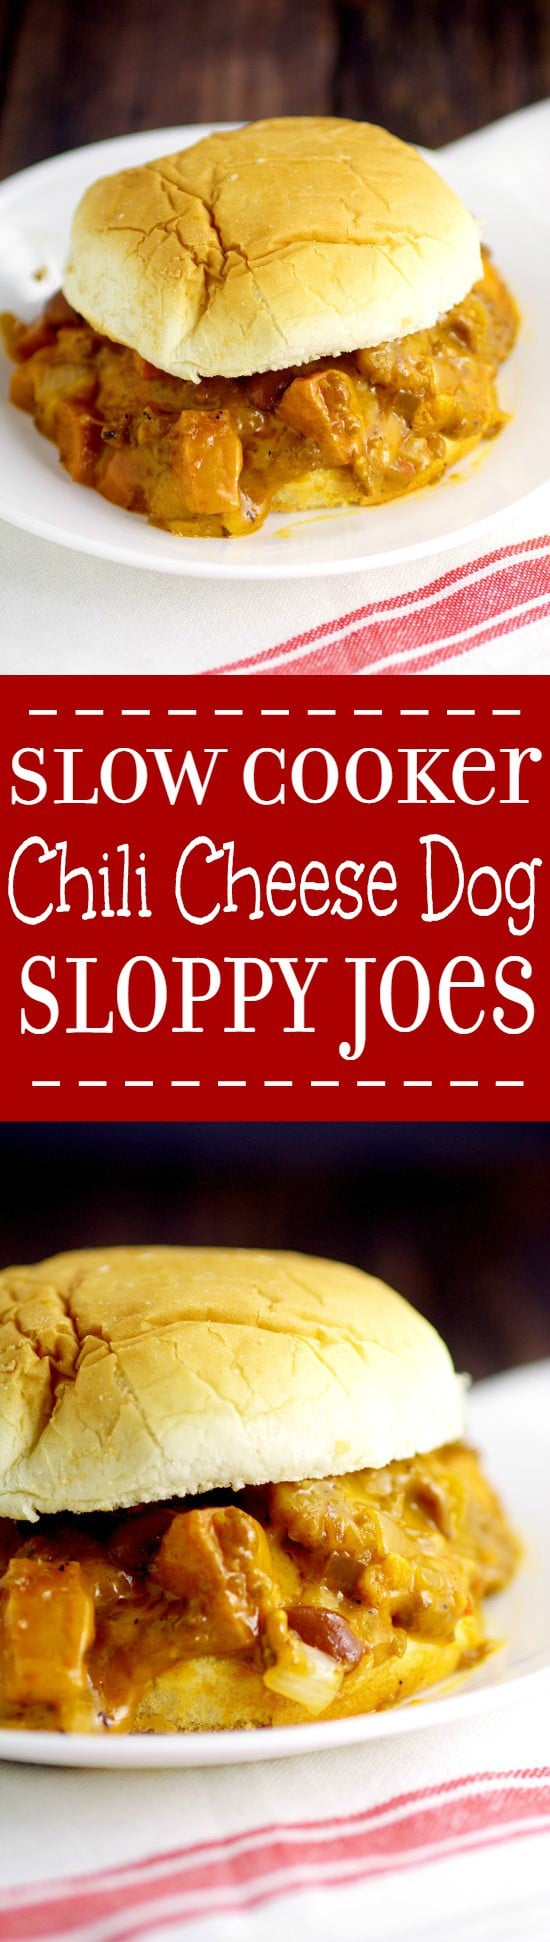 Easy Family Dinner Recipe - Slow Cooker Chili Cheese Dog Sloppy Joes.  Classic chili cheese dogs and sloppy joes join forces in these Slow Cooker Chili Cheese Dog Sloppy Joes to make a gooey, cheesy, cozy, comfort food meal in the Crockpot.  OMG. This looks amazing!